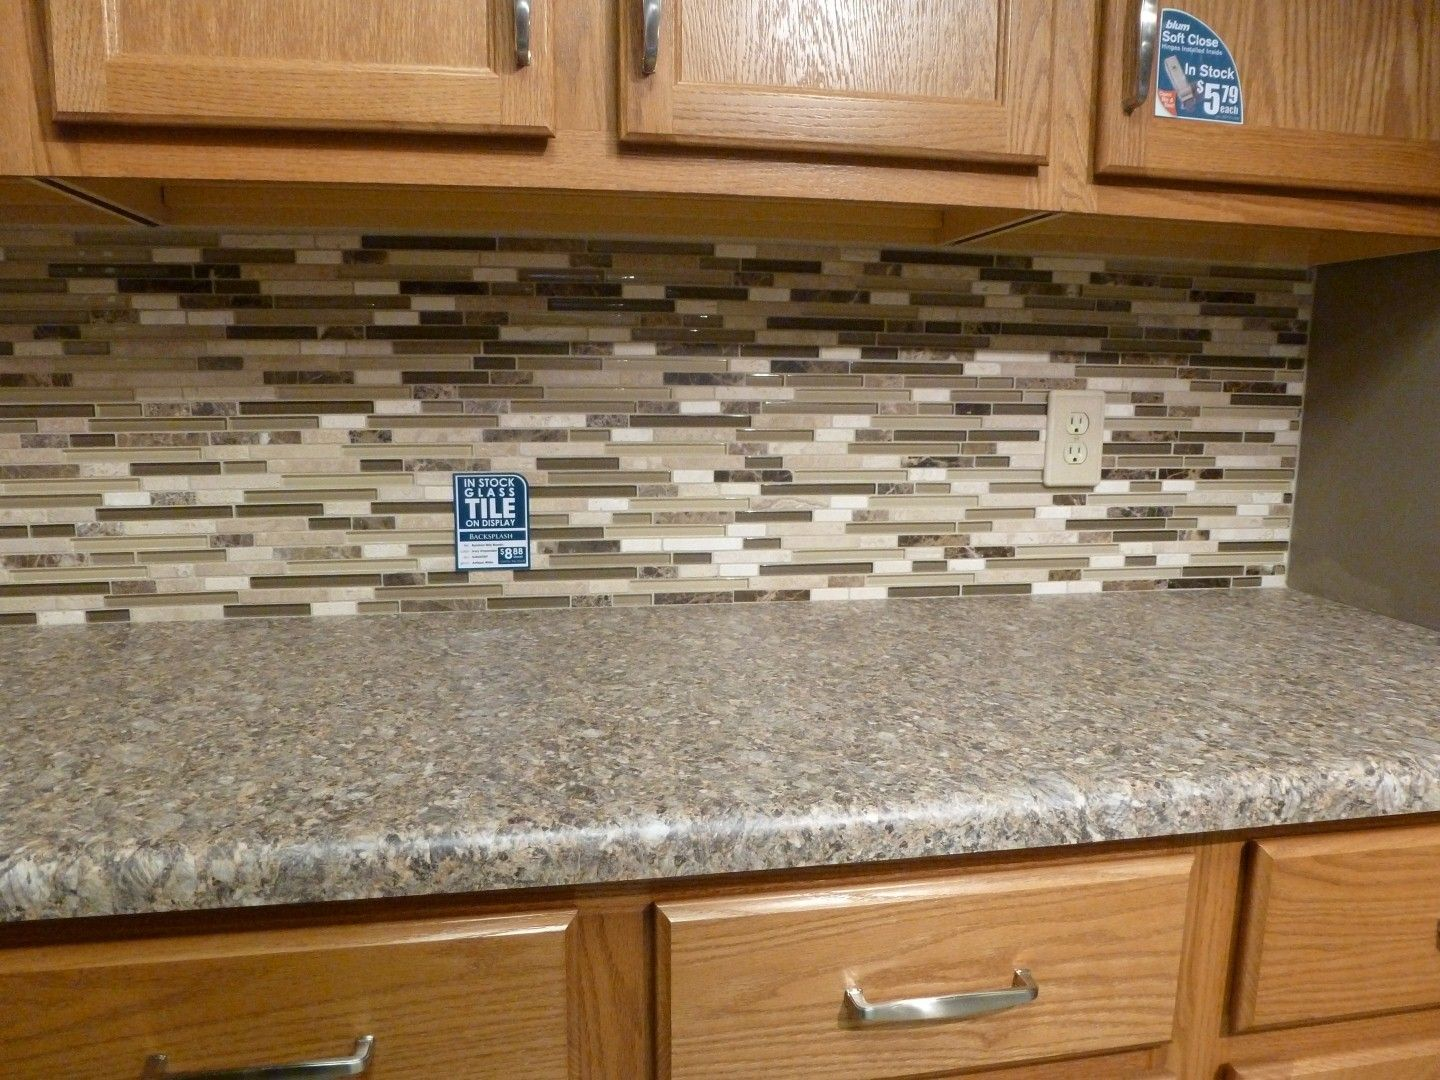 Mosaic kitchen tile backsplash ideas 2565 for Grey kitchen floor tiles ideas